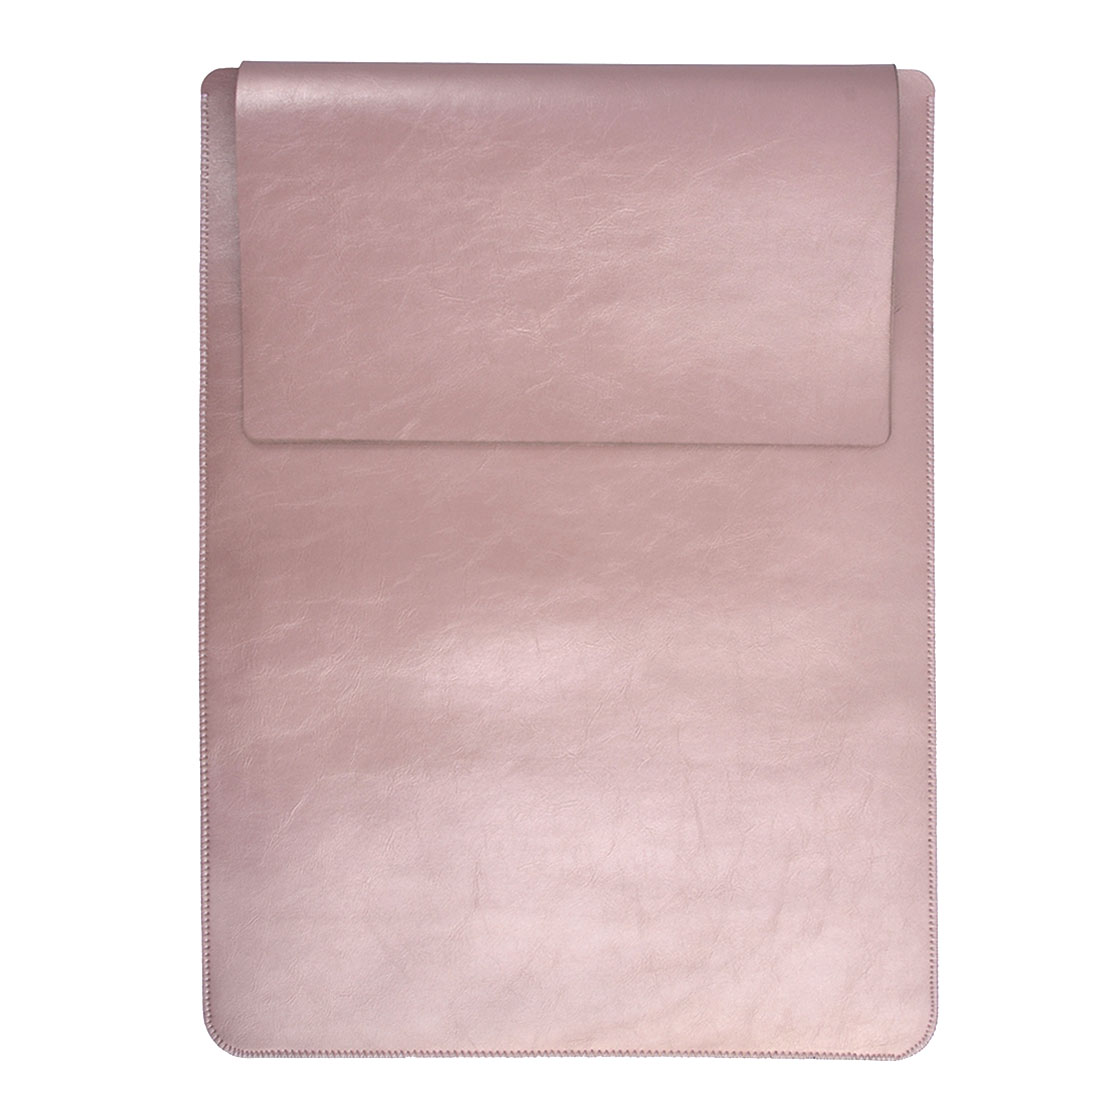 PC Computer Notebook Pouch Cover Laptop Sleeve Rose Pink for Macbook Air 11 Inch